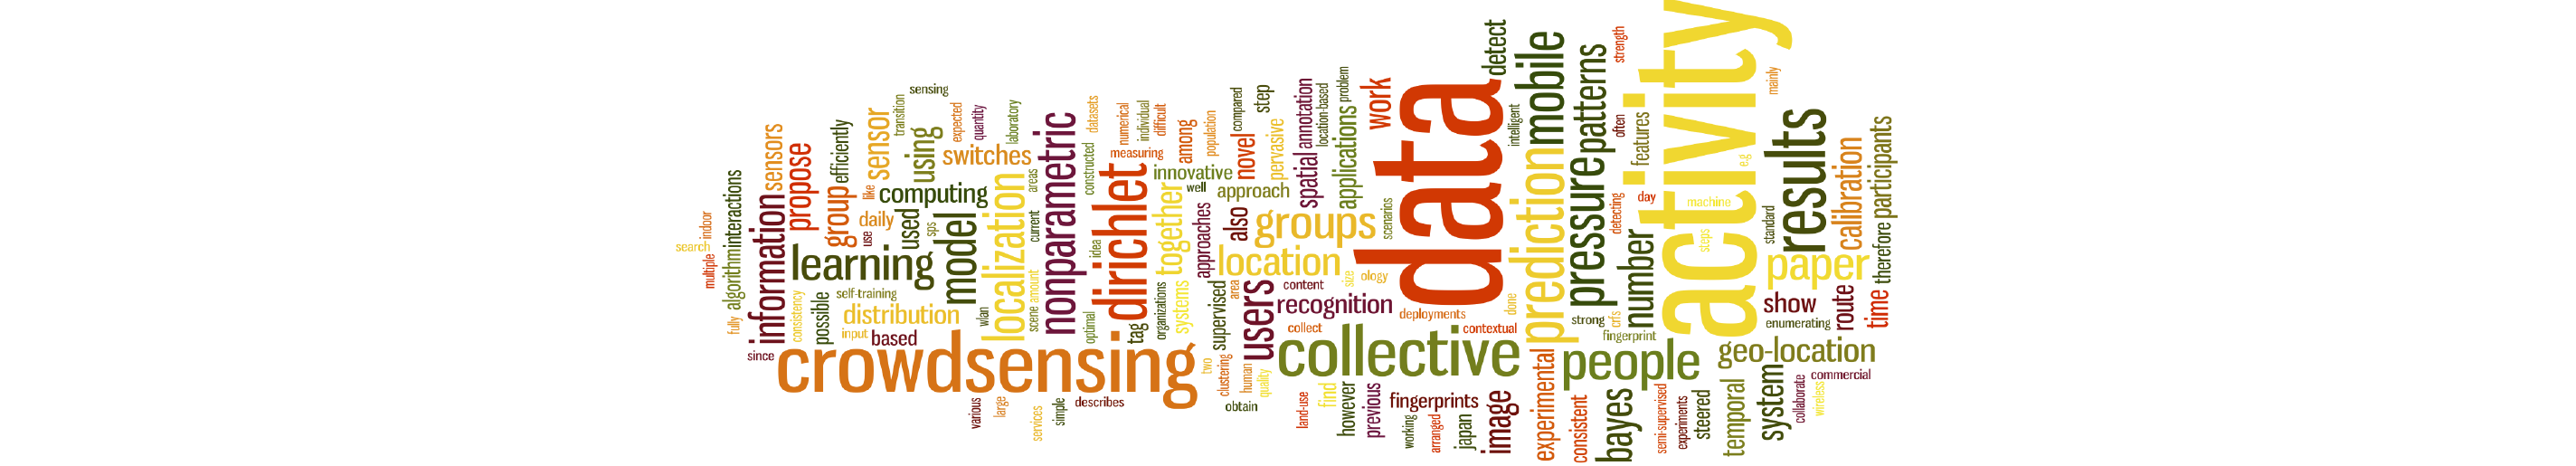 tagcloud11-new